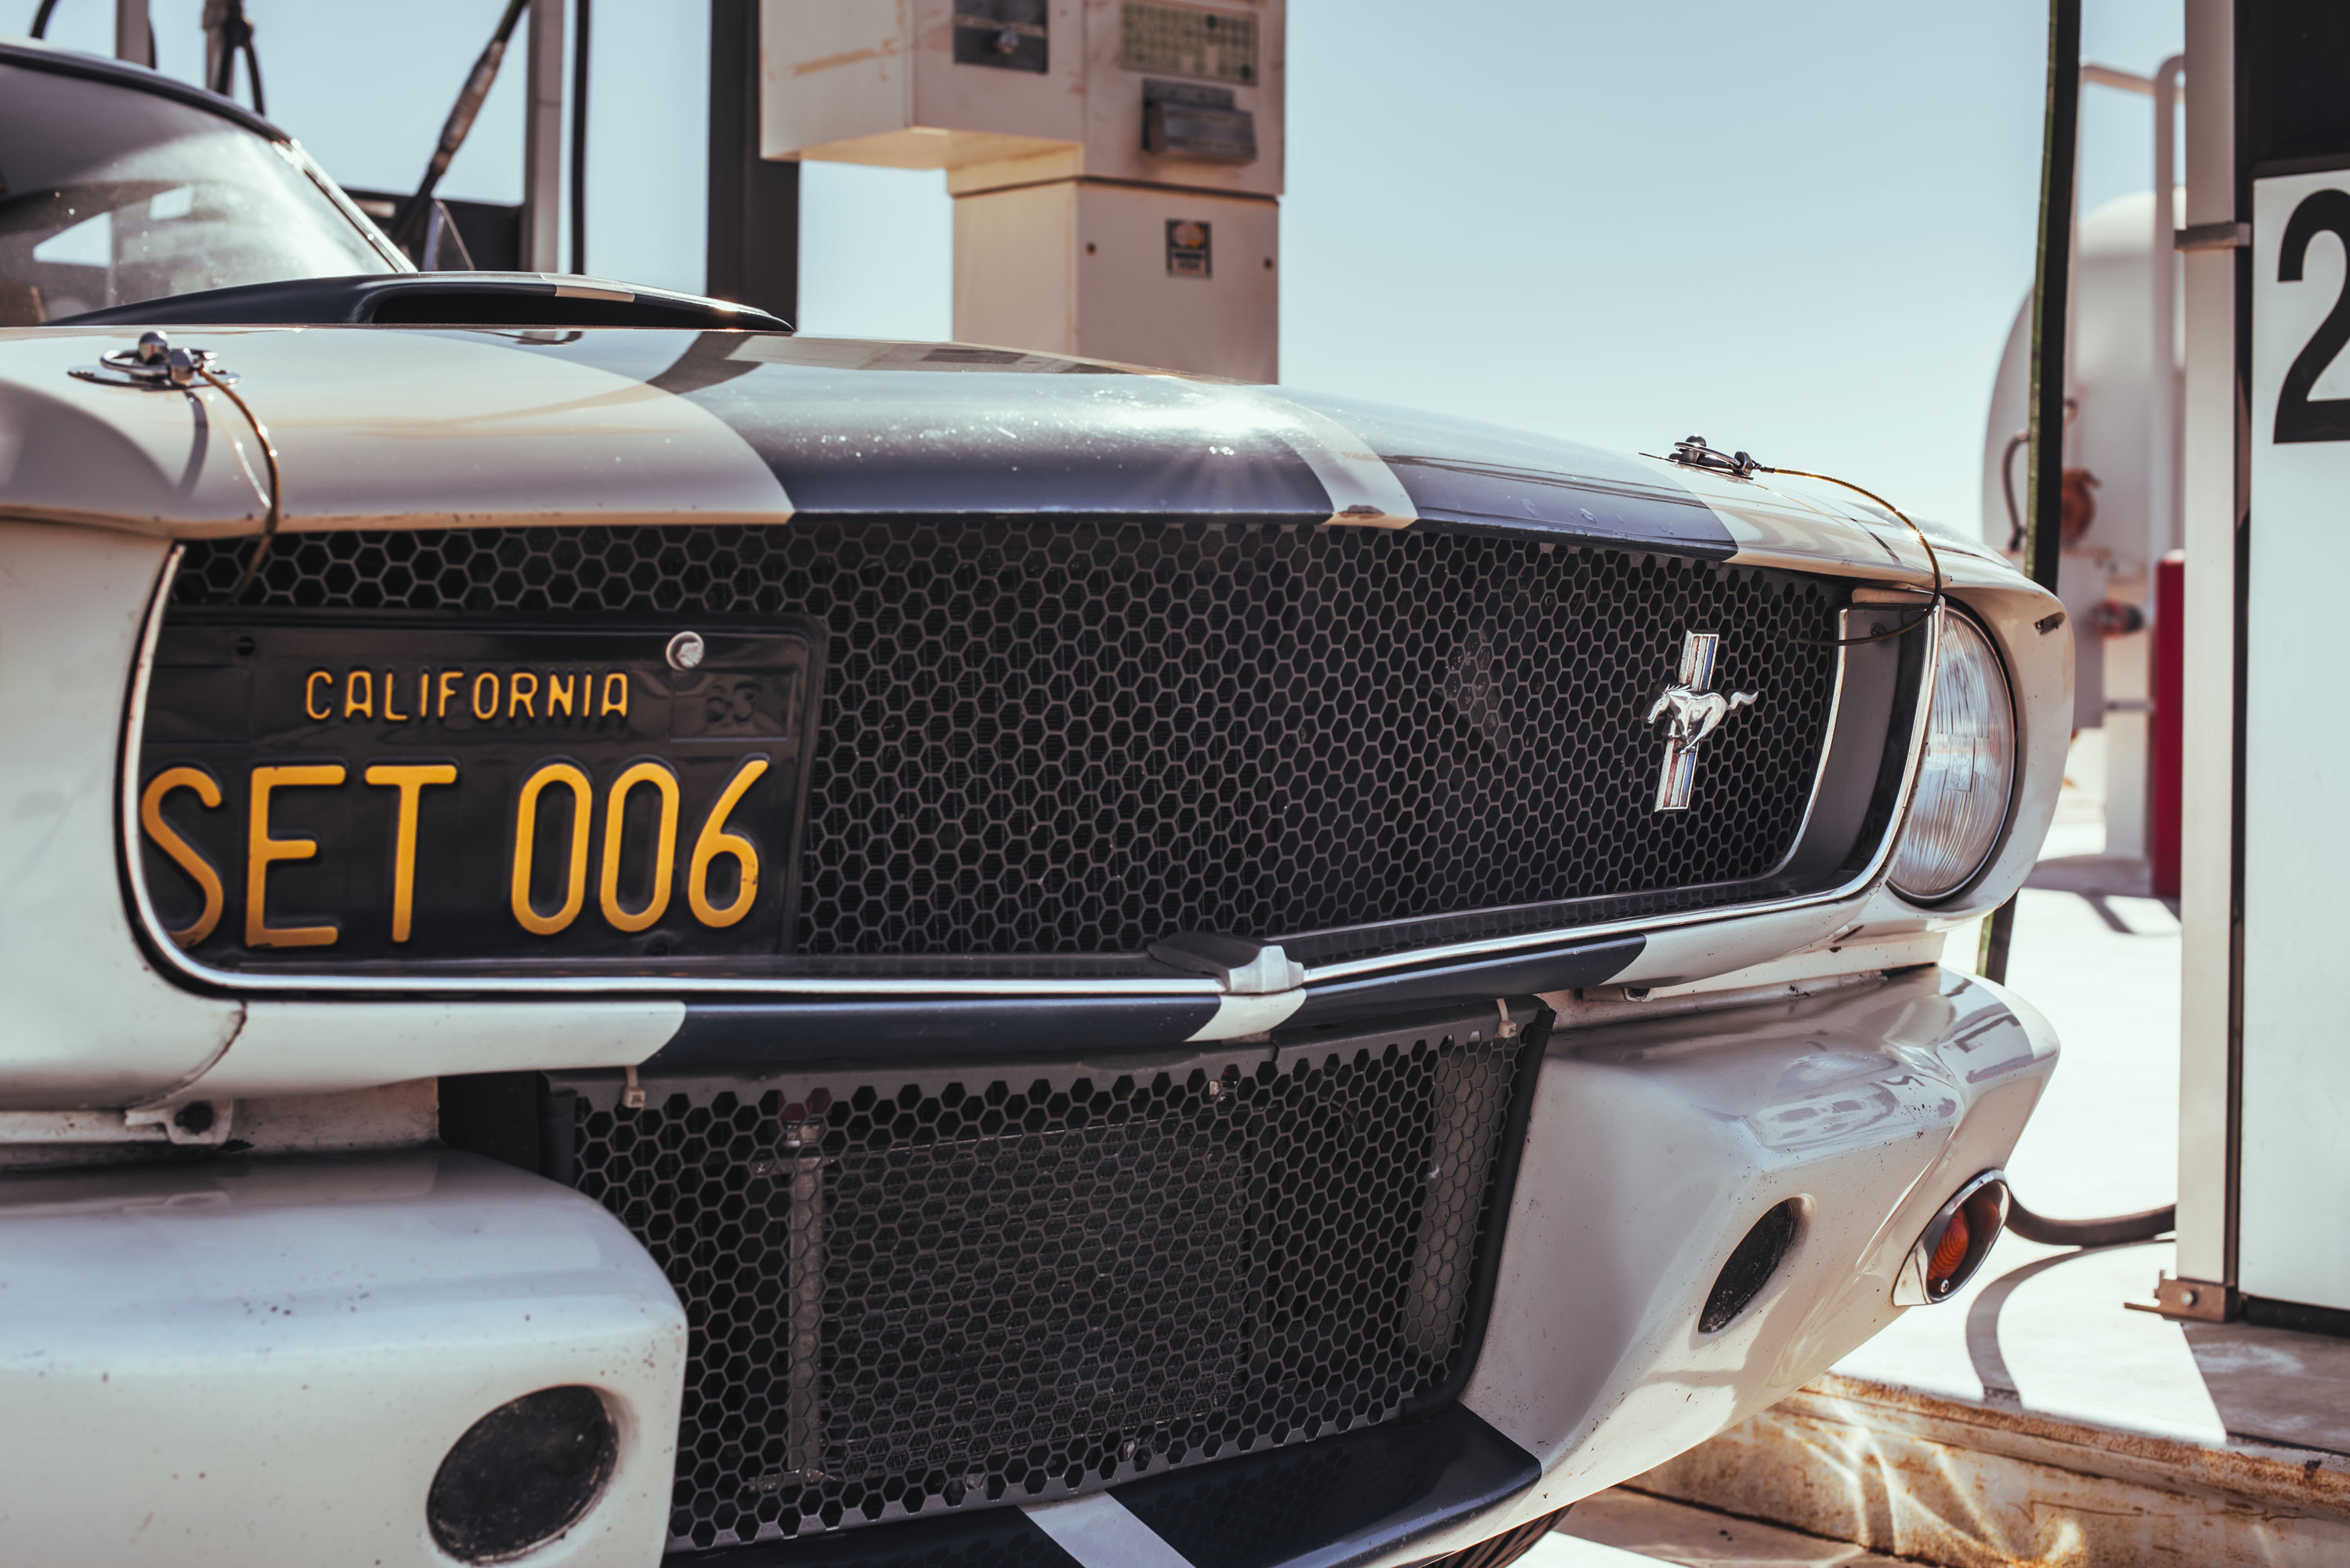 1965 Shelby GT350 Mustang grille detail